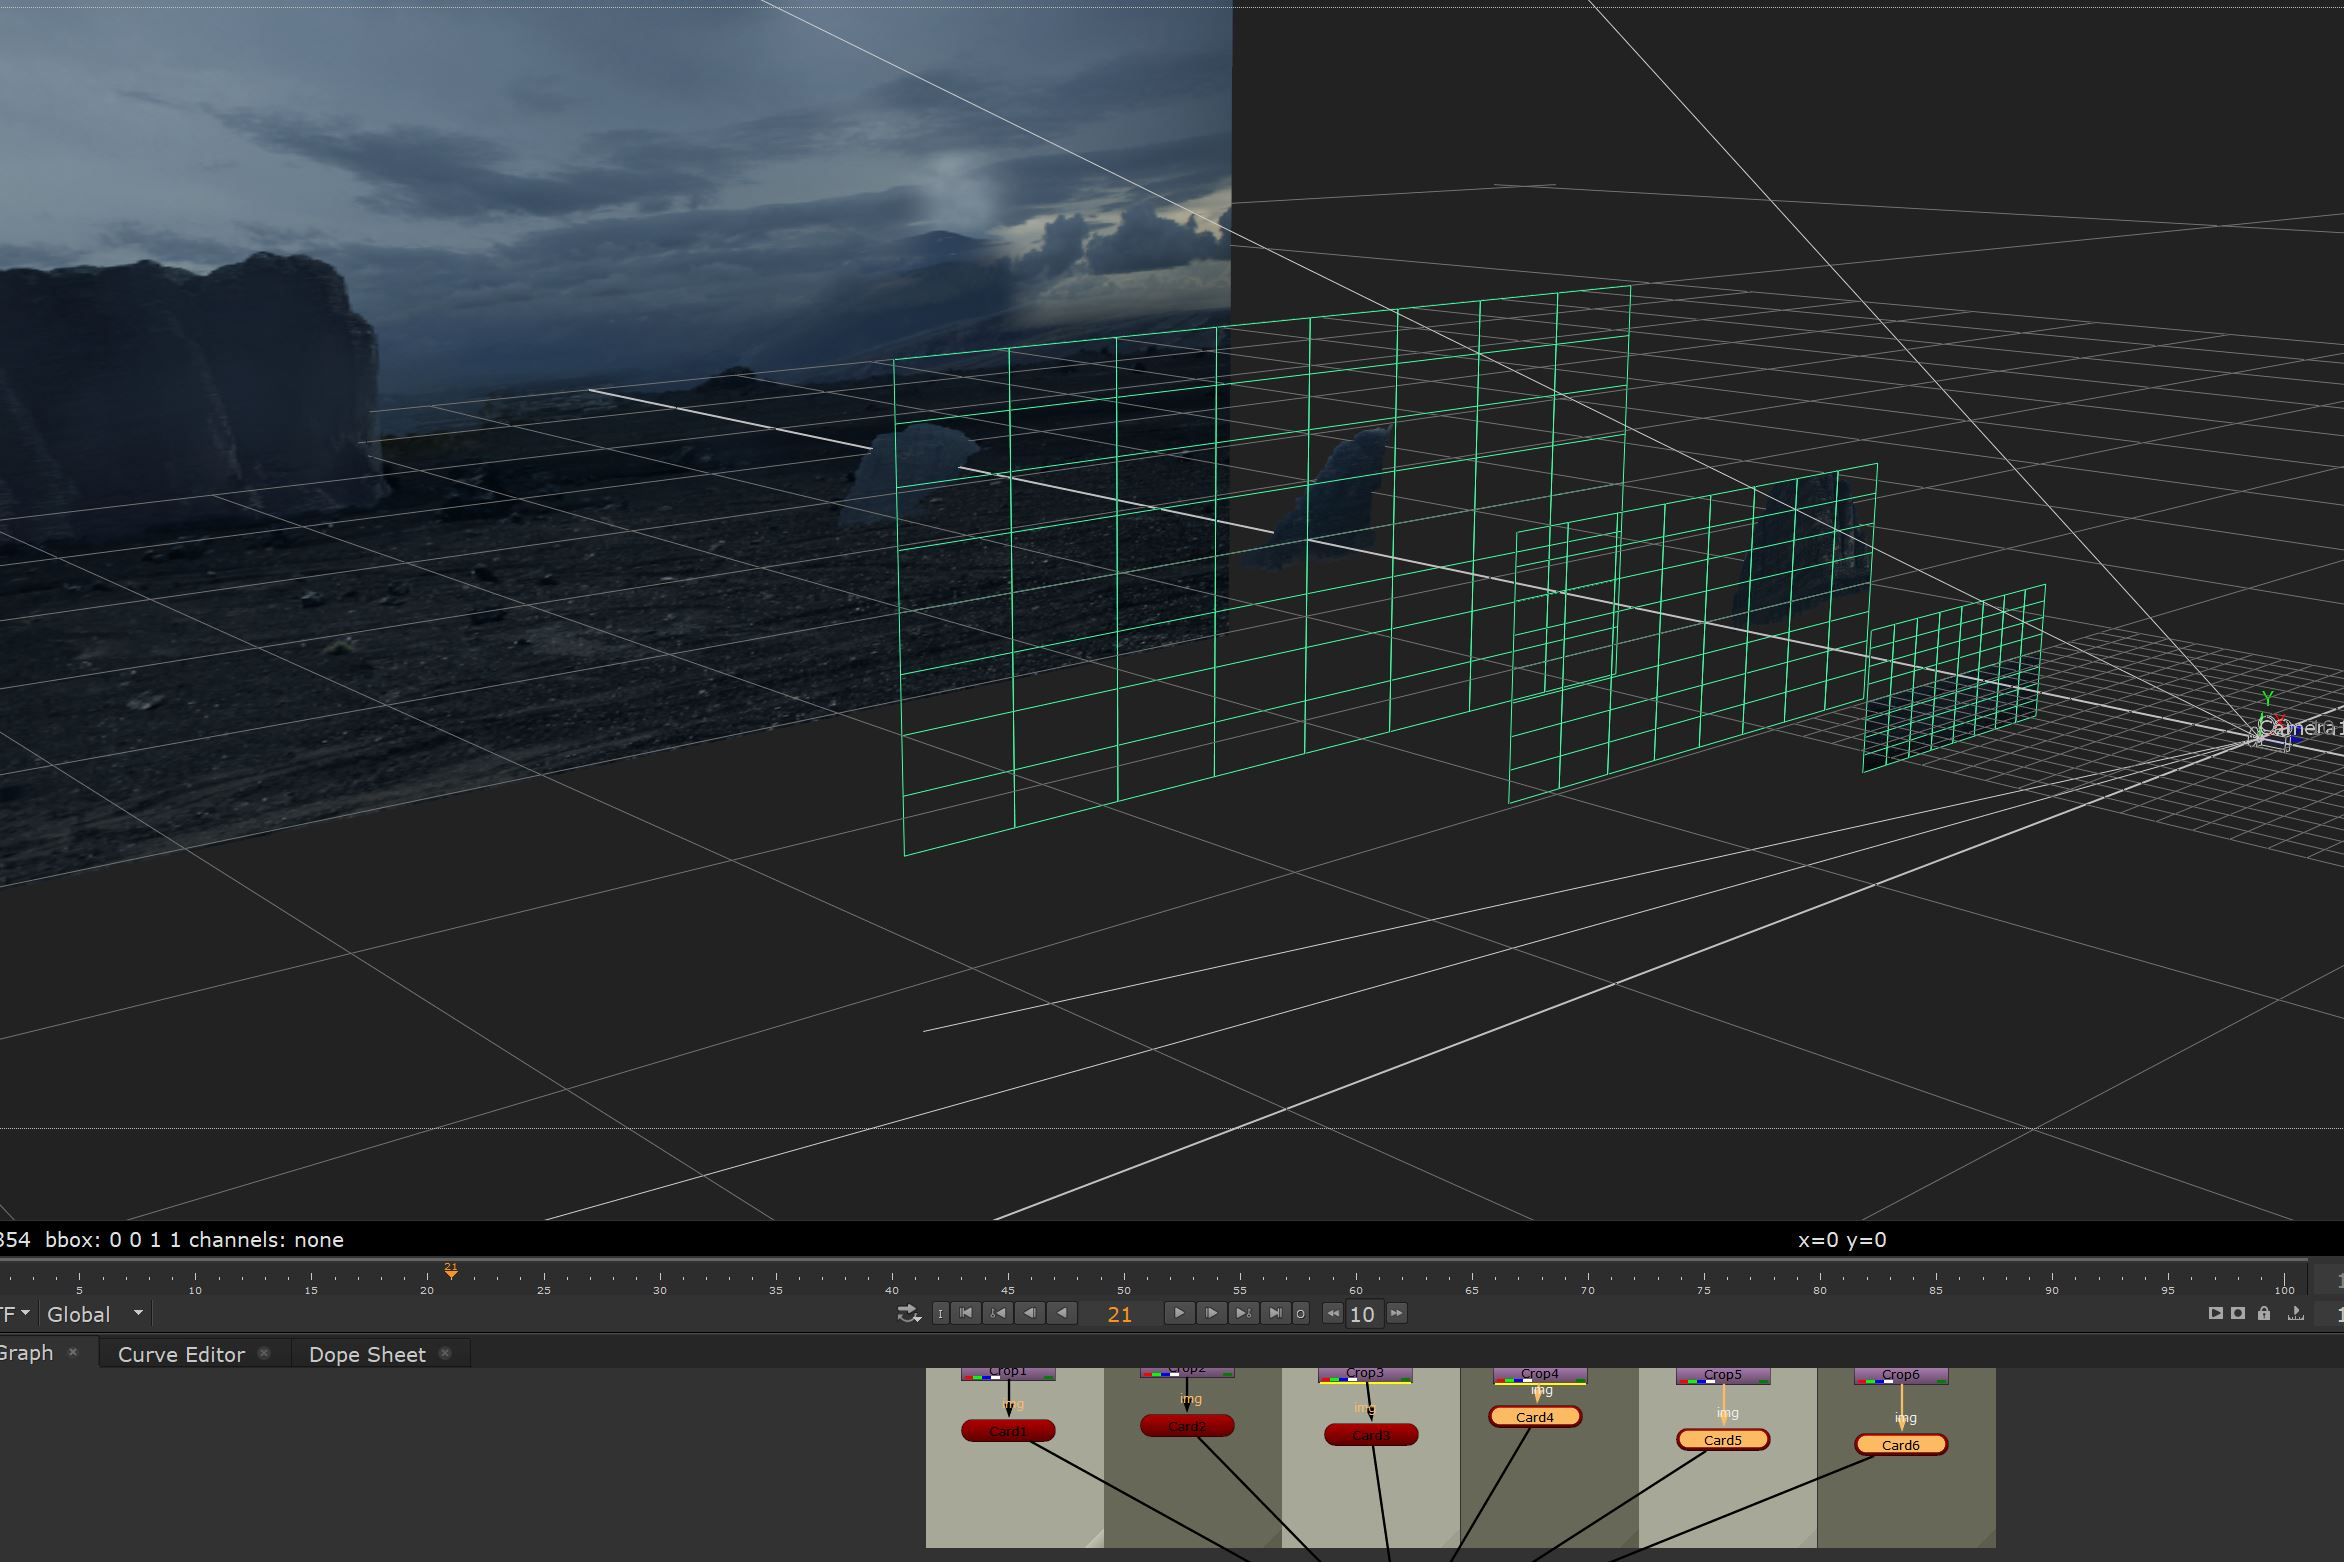 The 3D projection of the cards in Nuke.